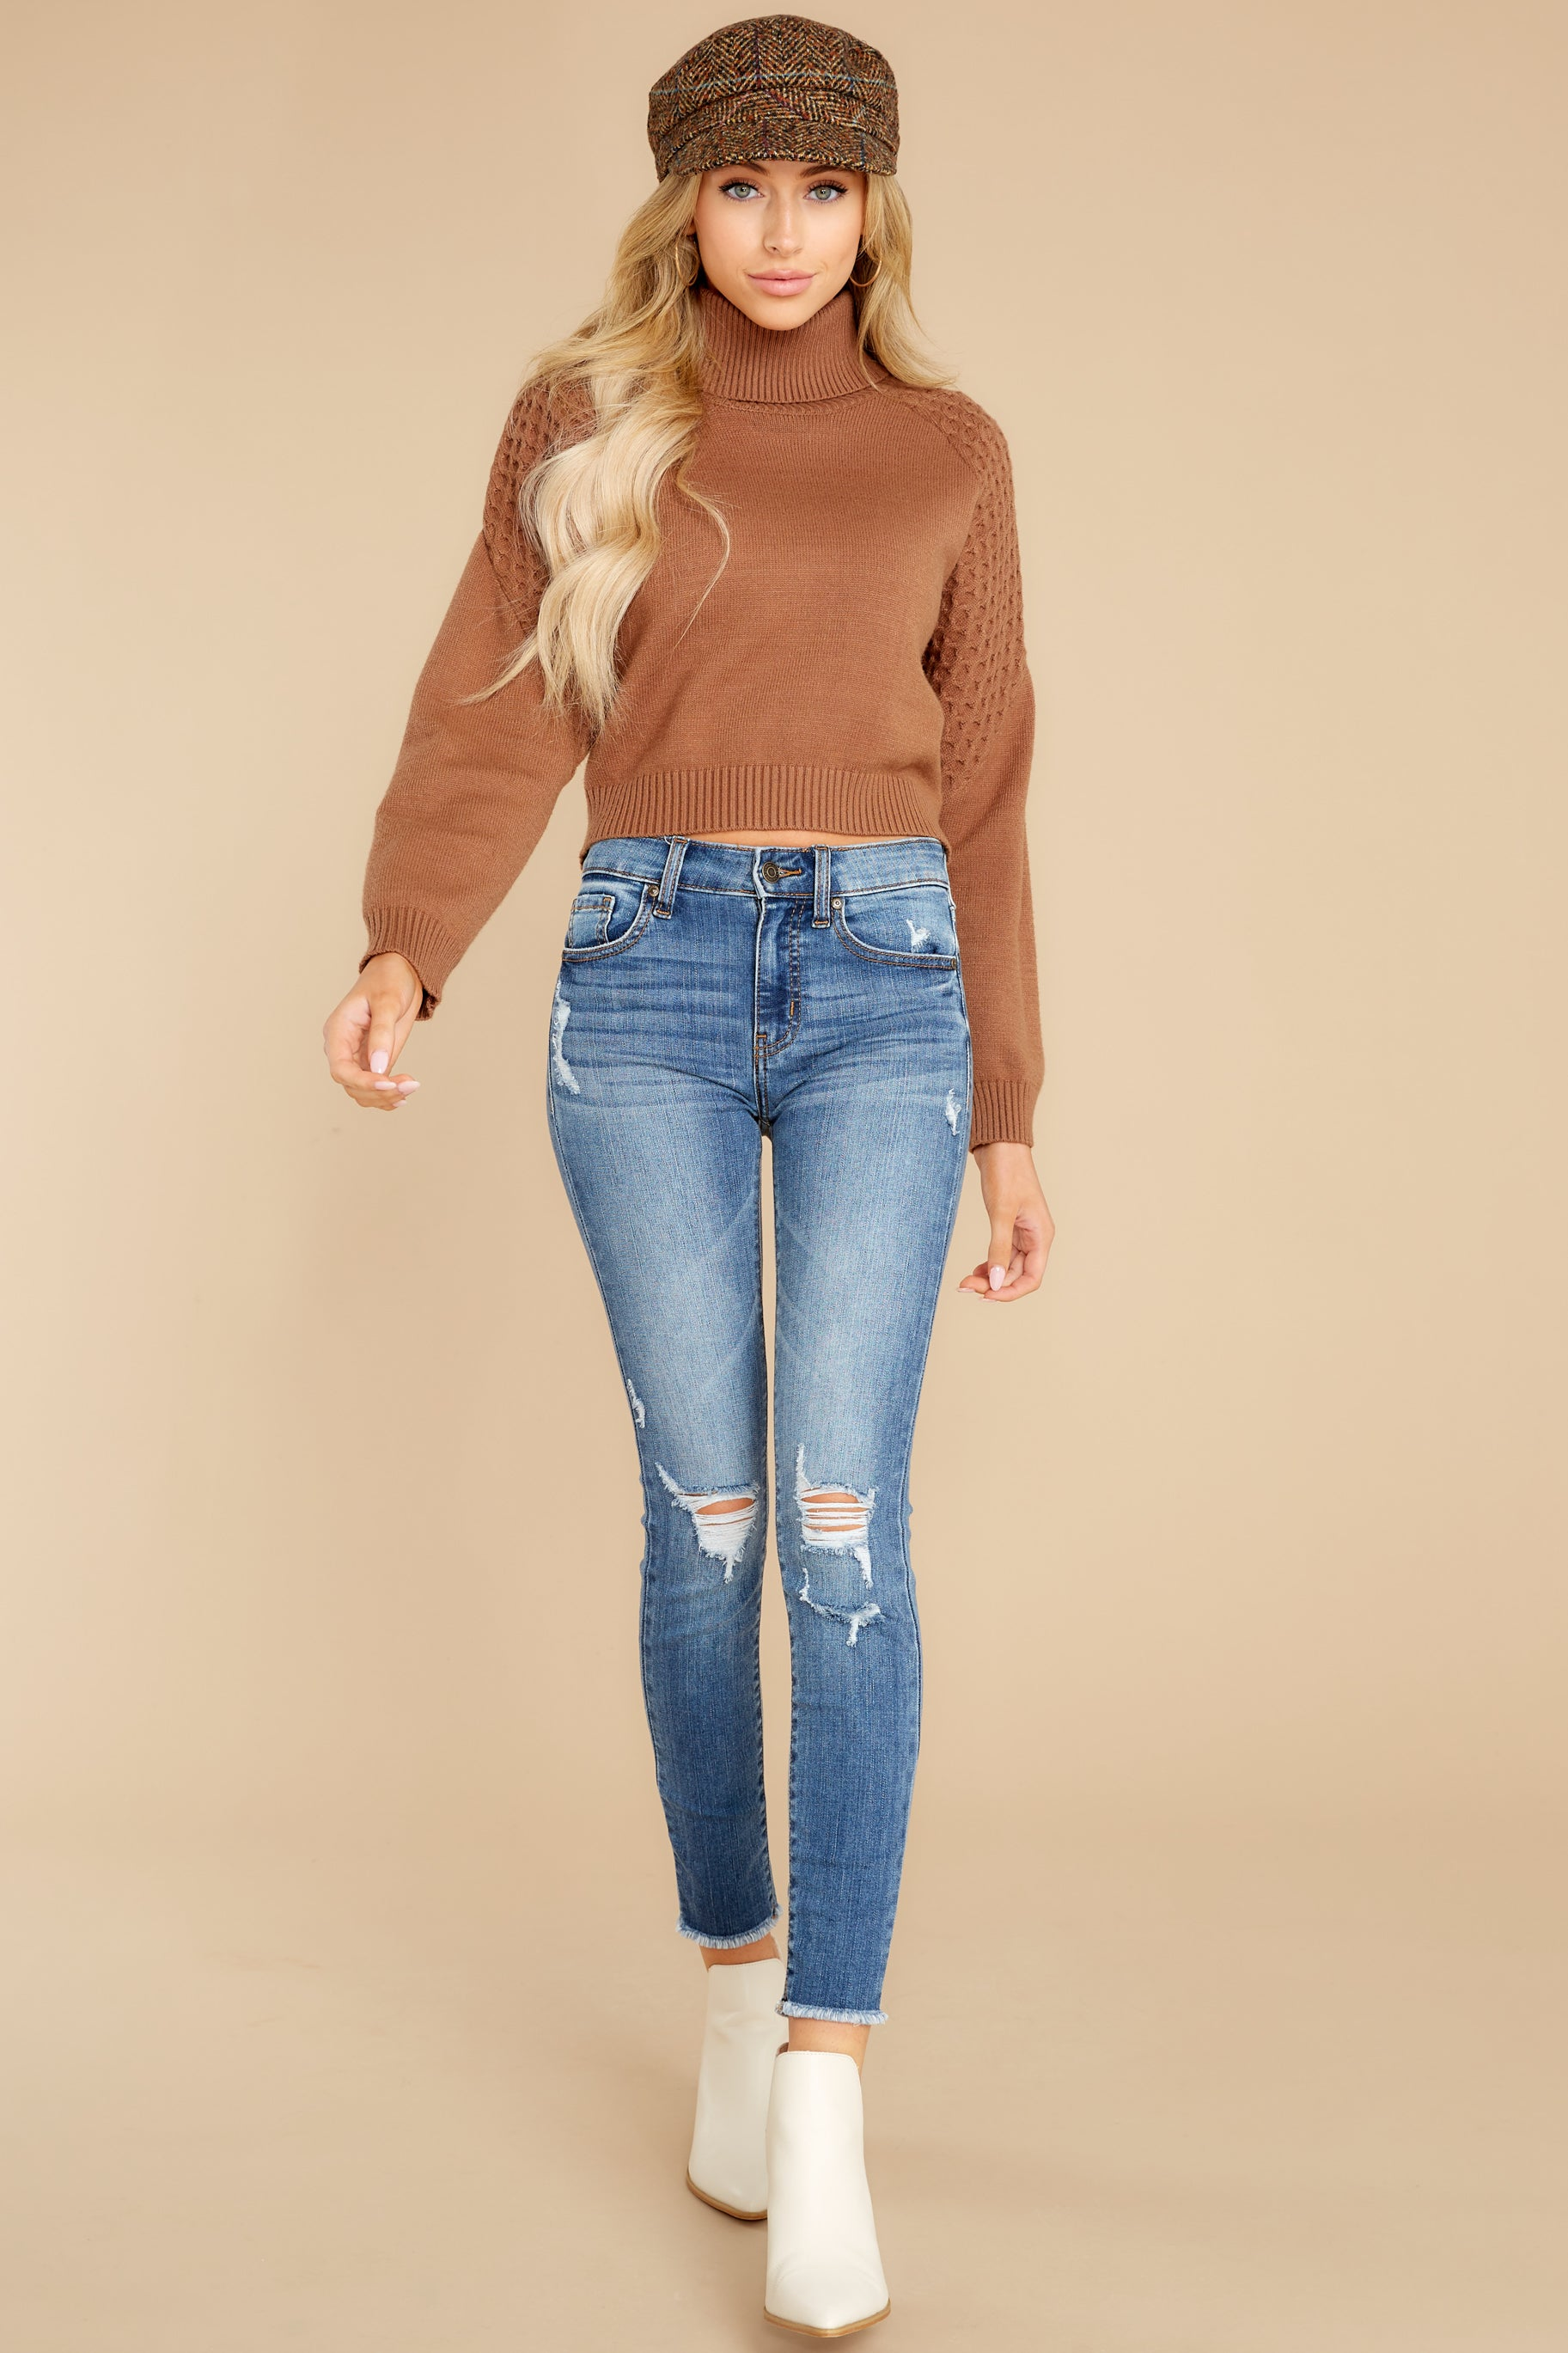 3 Back On Again Camel Sweater at reddress.com